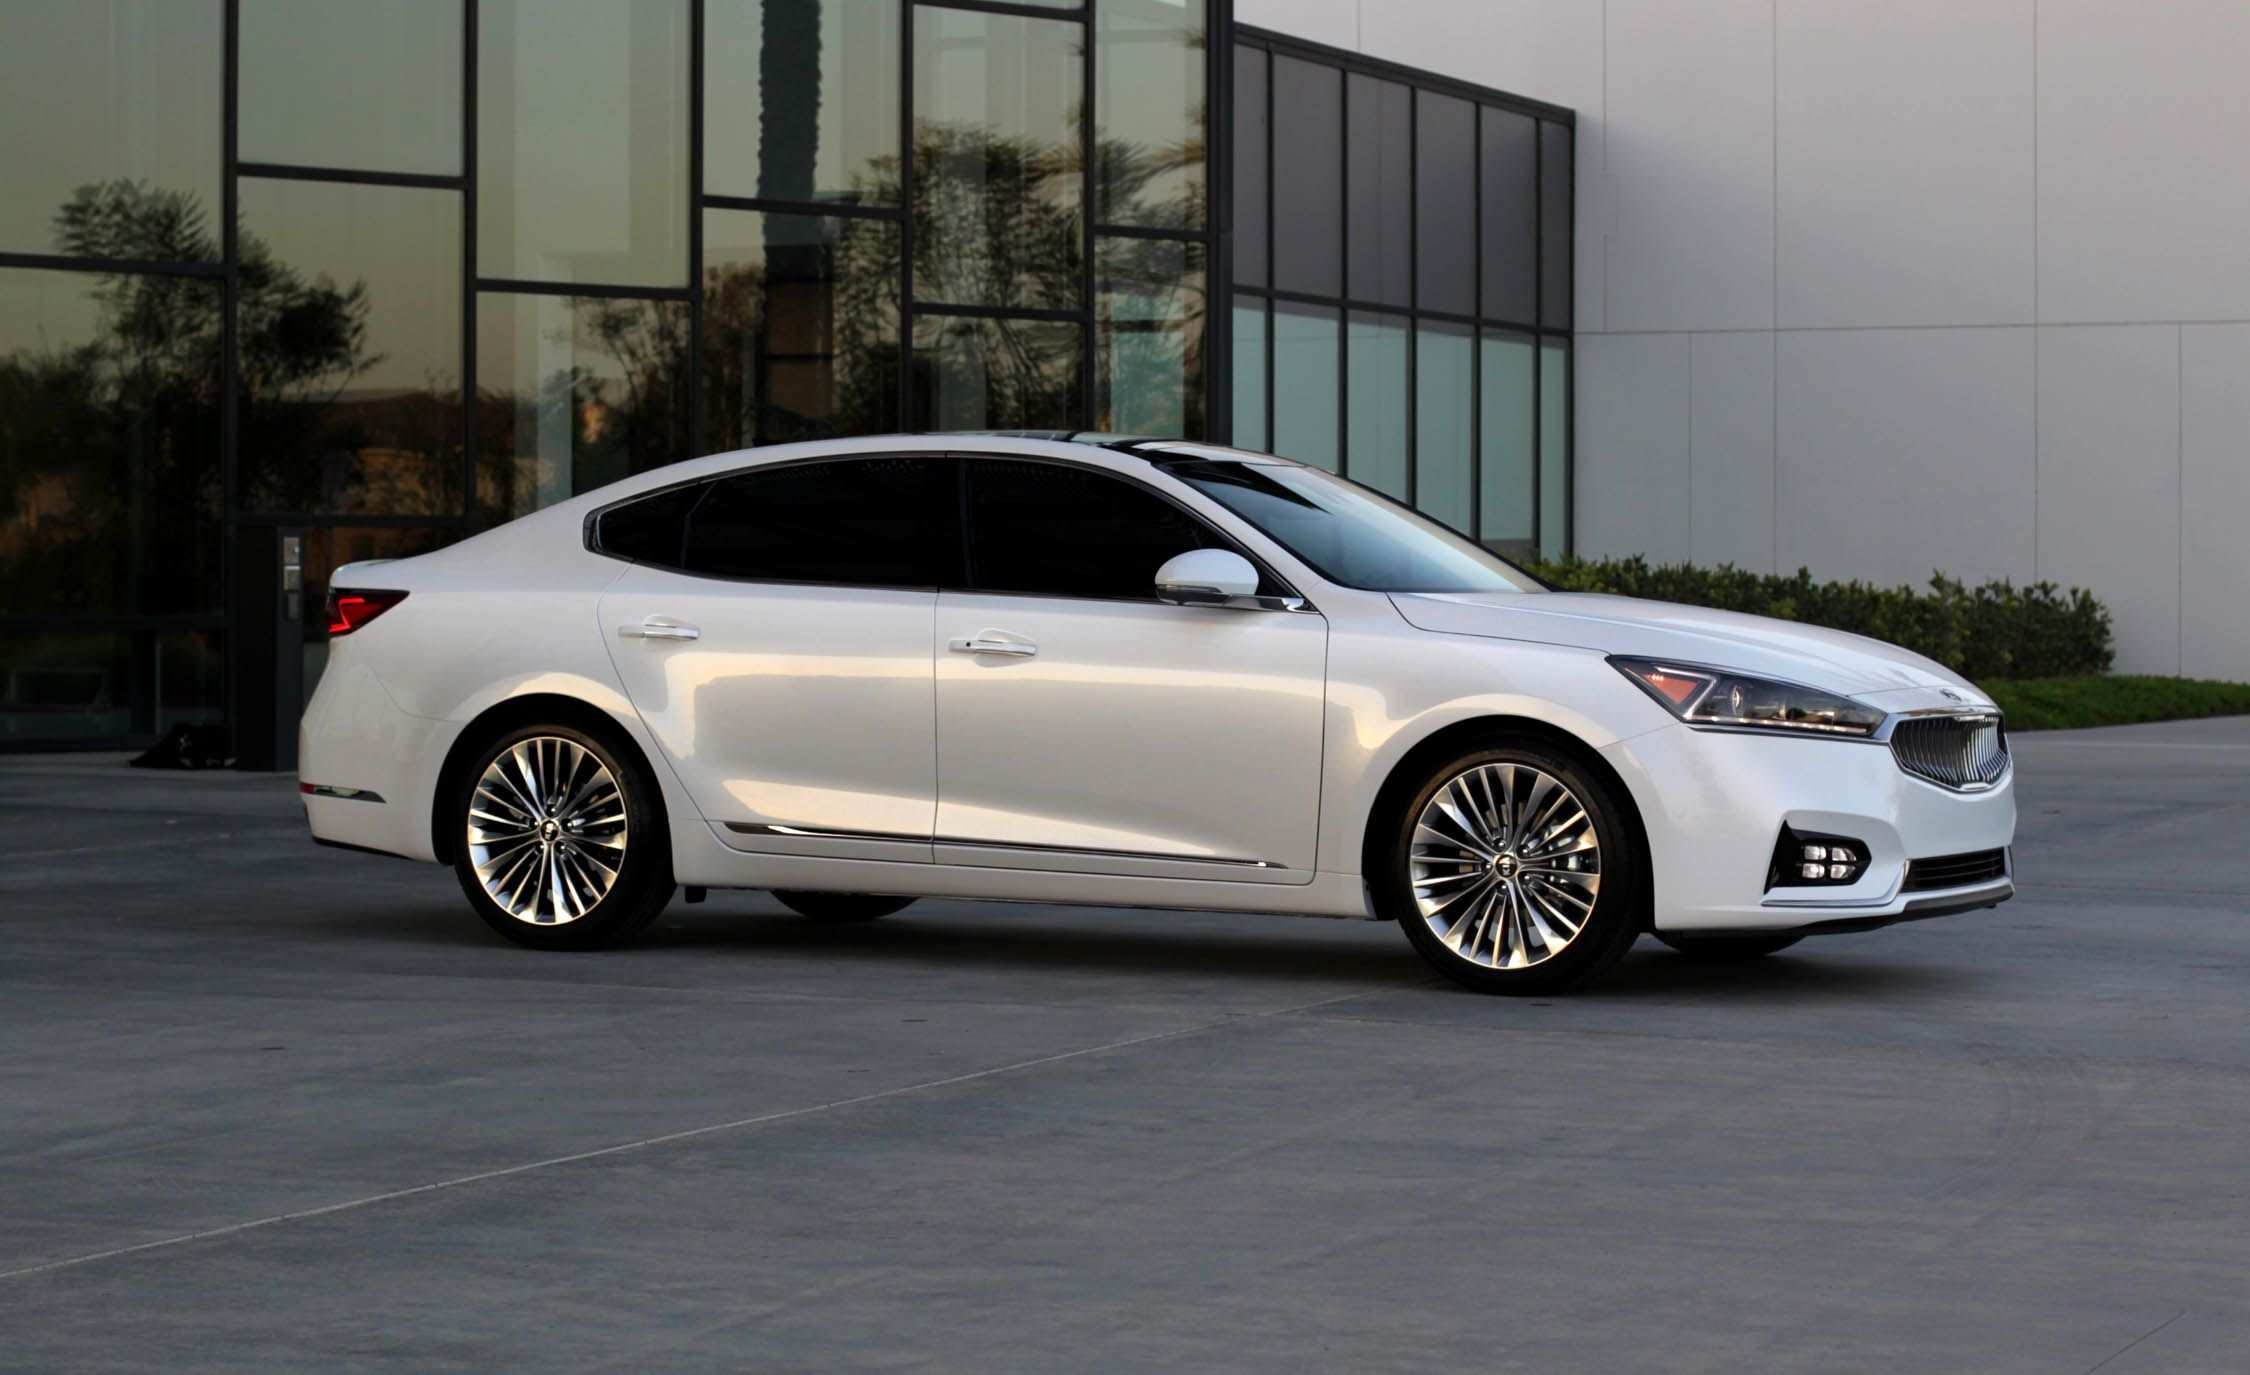 85 The Best 2019 All Kia Cadenza Redesign